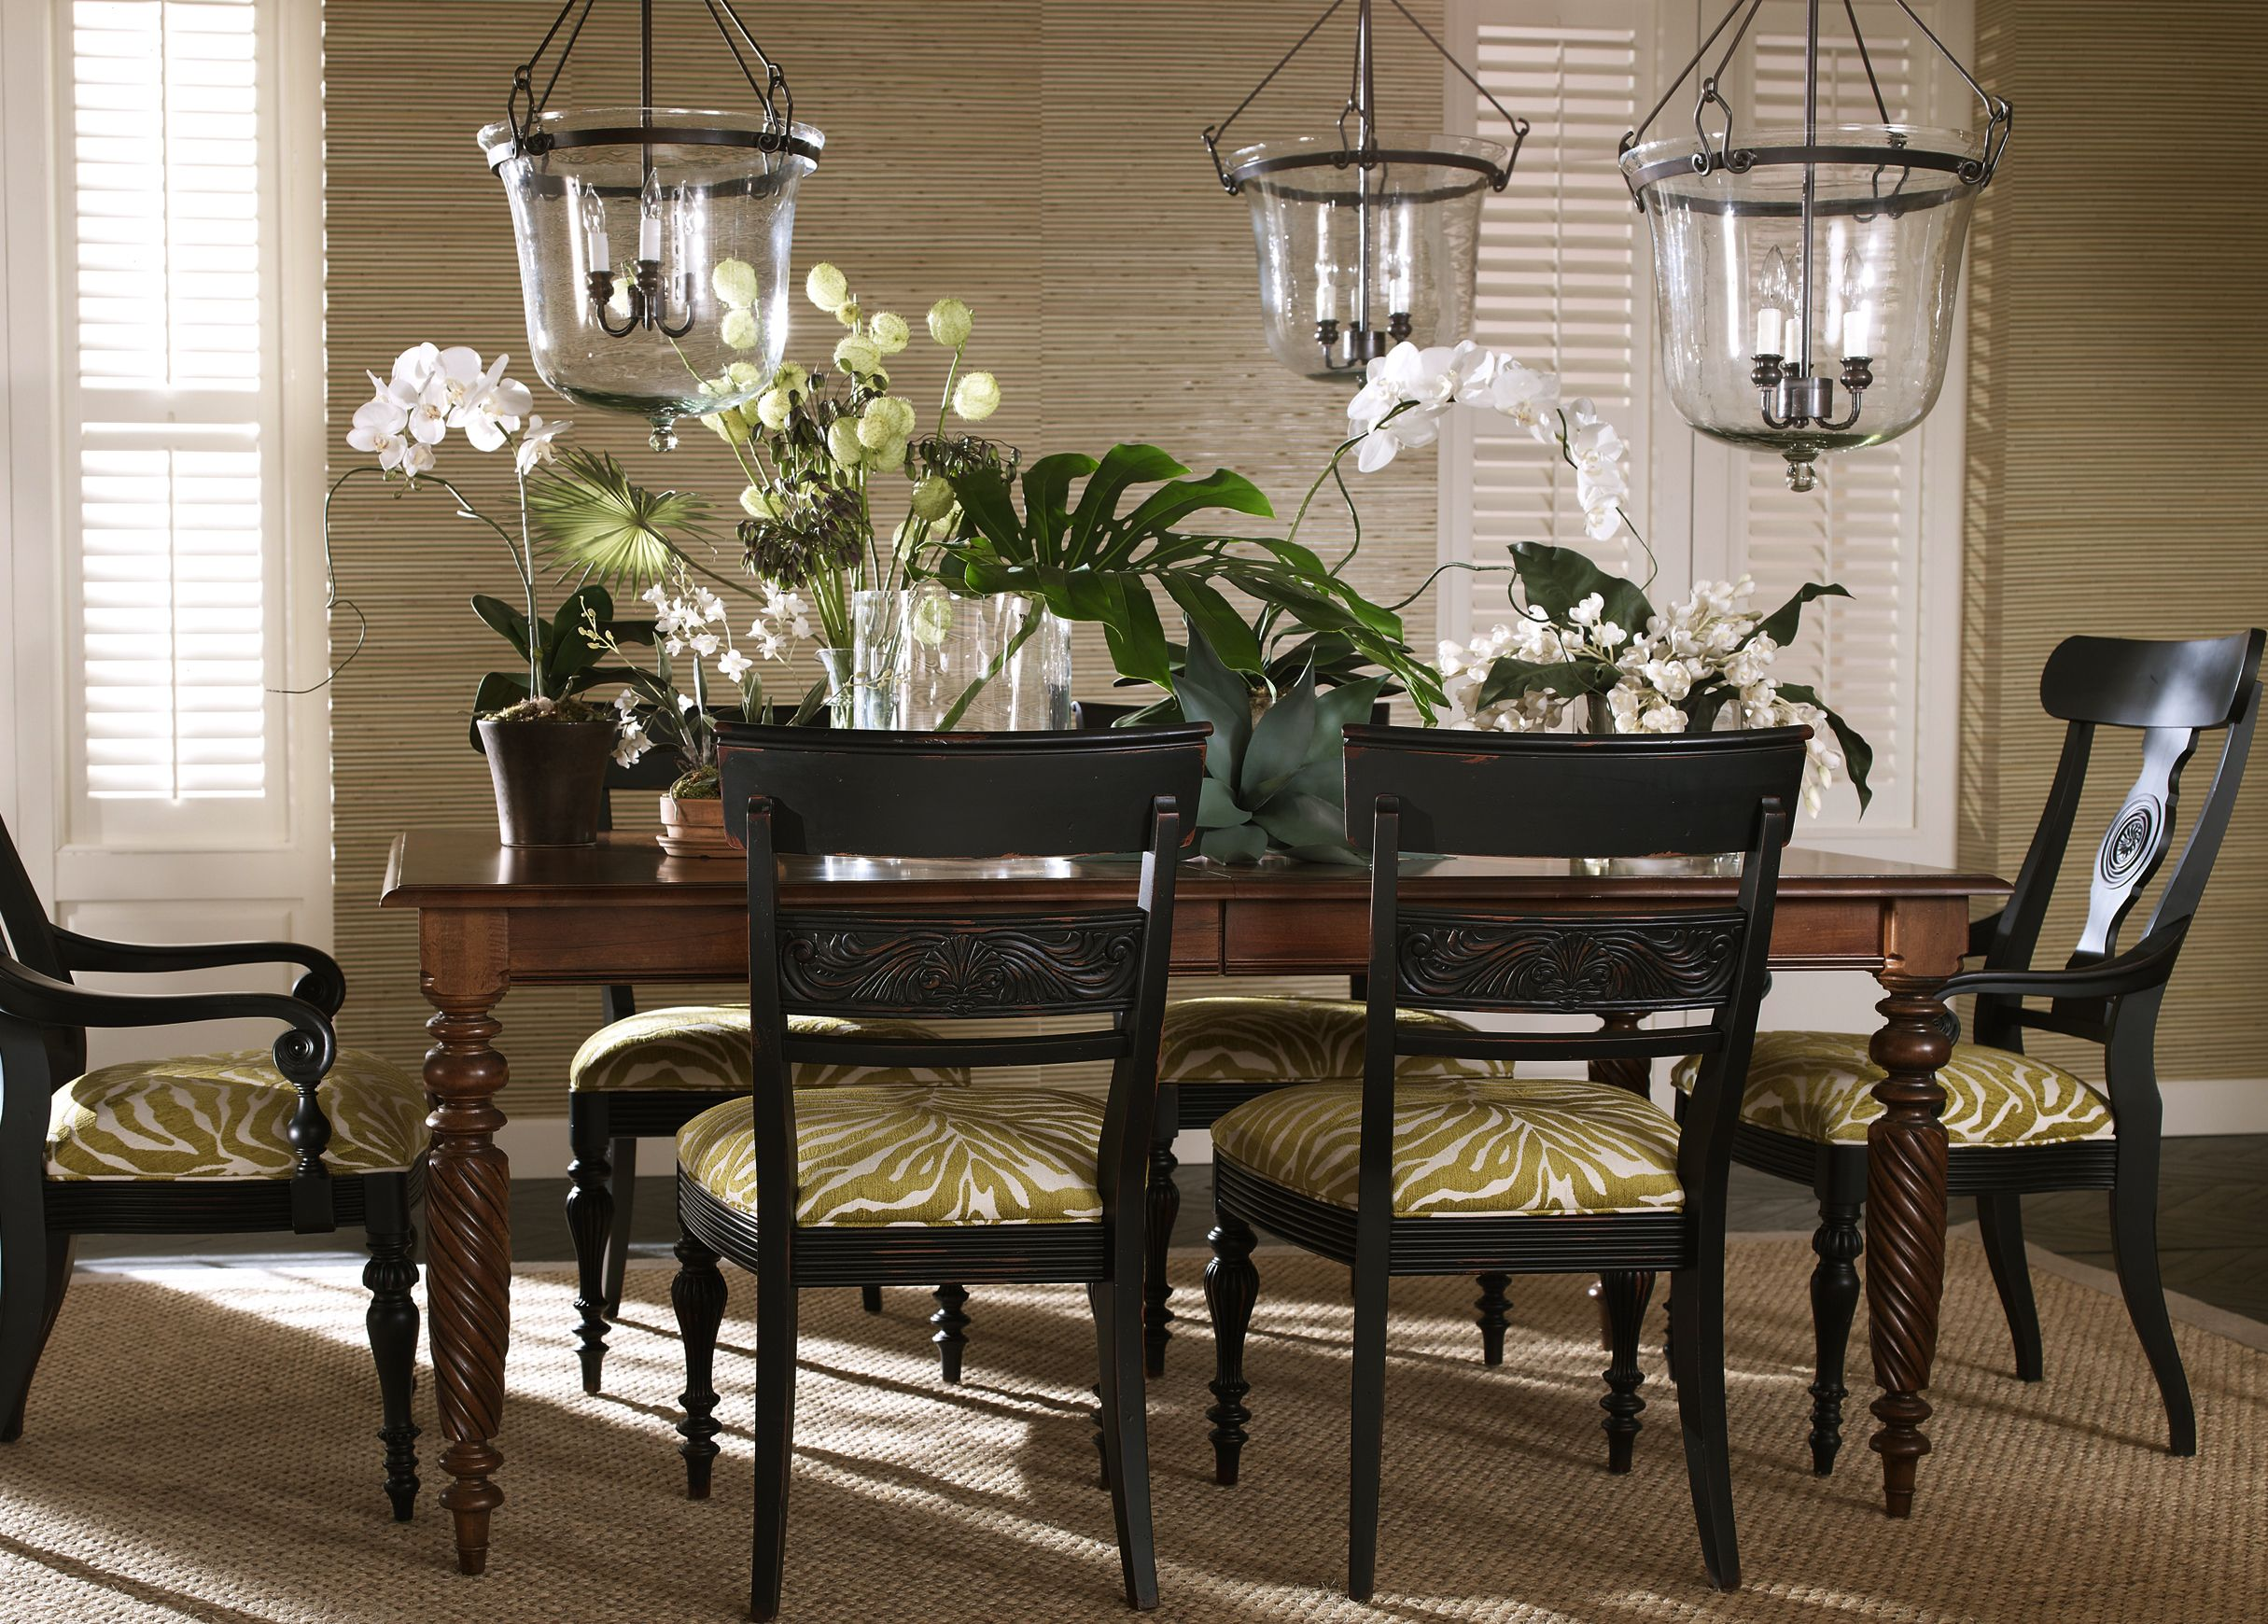 Windward Dining Room  Ethan Allen  Great Home Ideas Decor And Unique Zebra Dining Room Chairs Decorating Inspiration